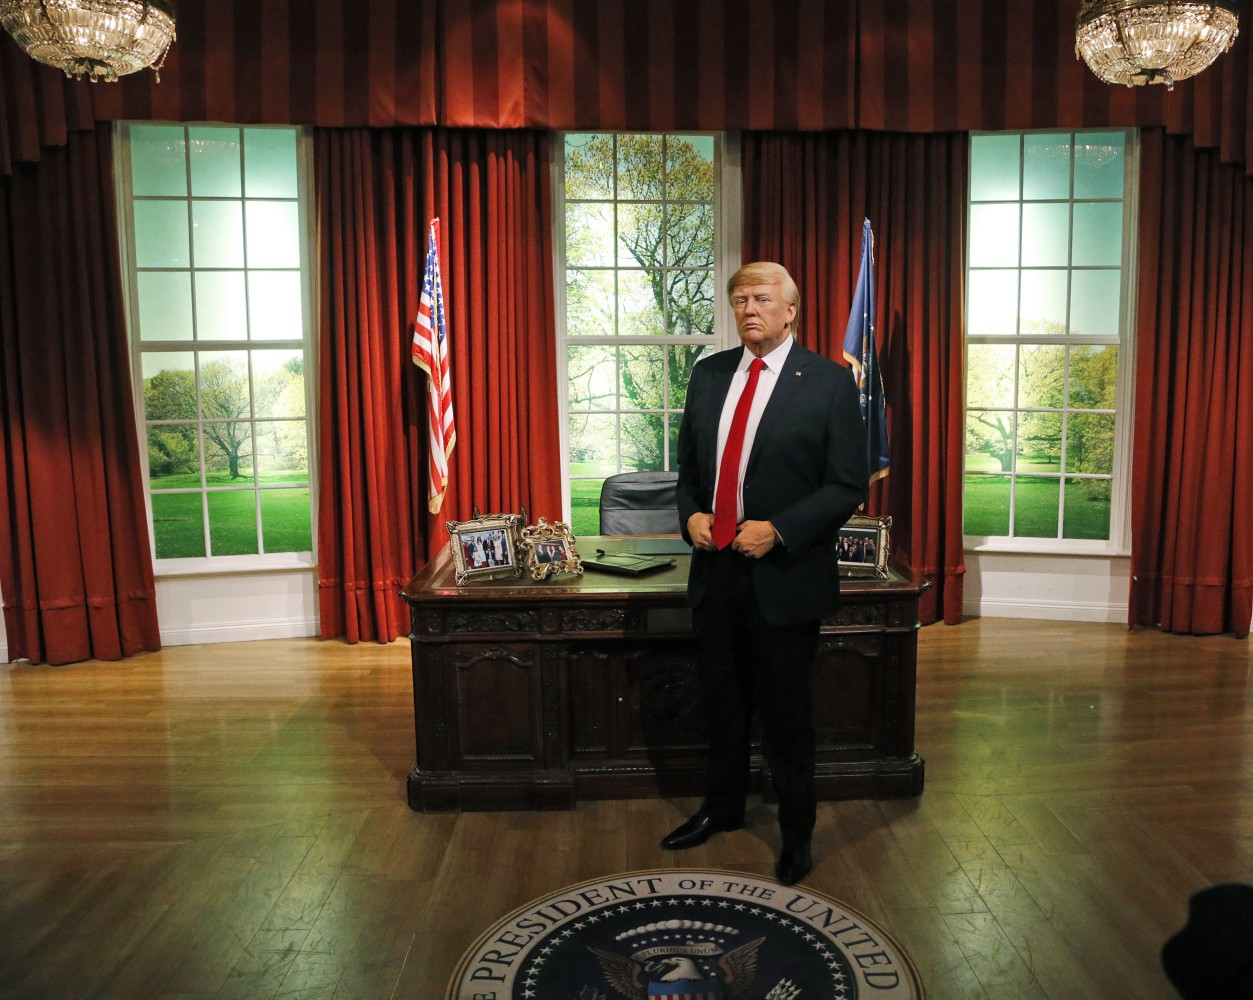 Five weeks for his new hairdo: Trump stars at Madame Tussauds